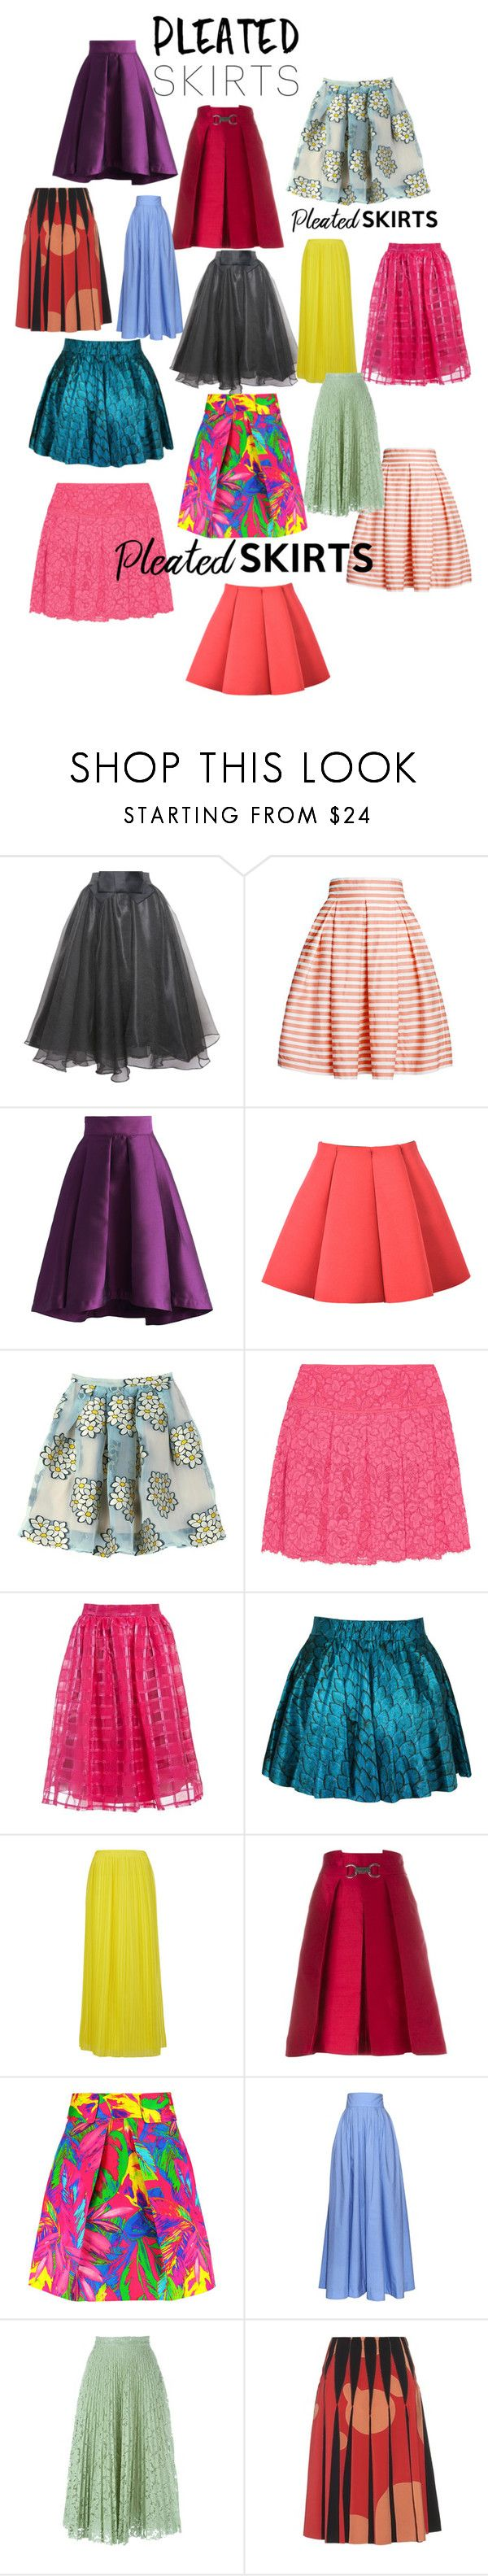 """""""PLEATED SKIRTS"""" by mandimwpink ❤ liked on Polyvore featuring Relaxfeel, Rumour London, Chicwish, RED Valentino, DKNY, Sans Souci, BOSS Orange, CÉLINE, Milly and Rosie Assoulin"""